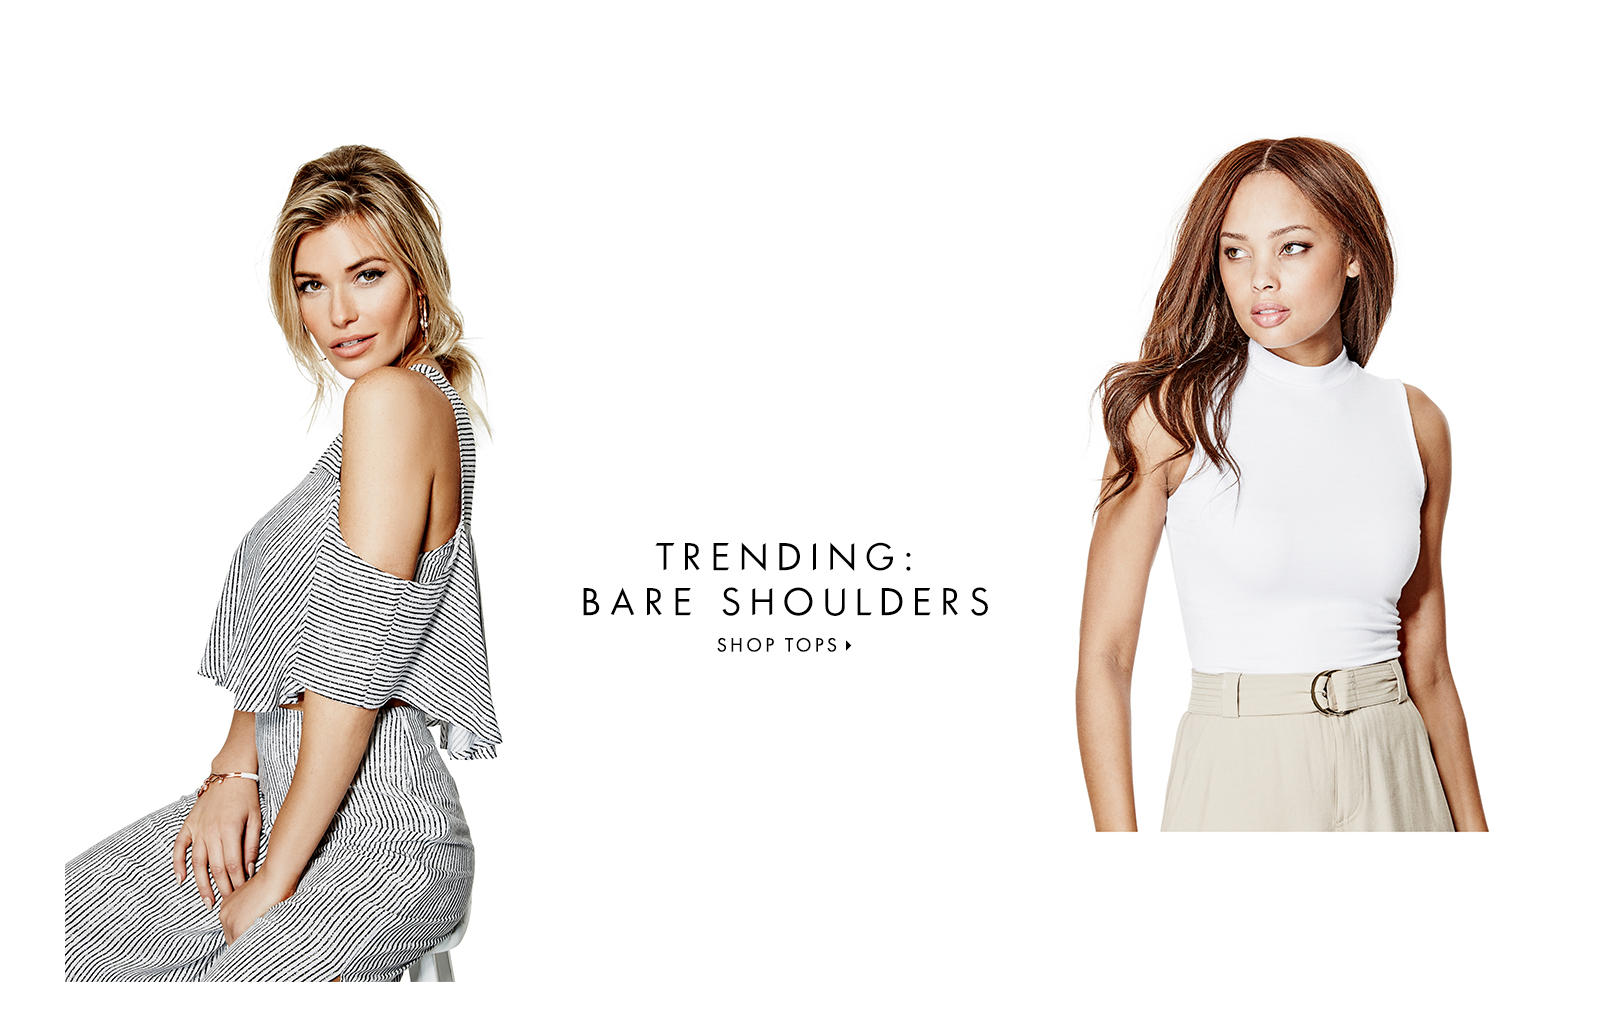 TRENDING: BARE SHOULDERS